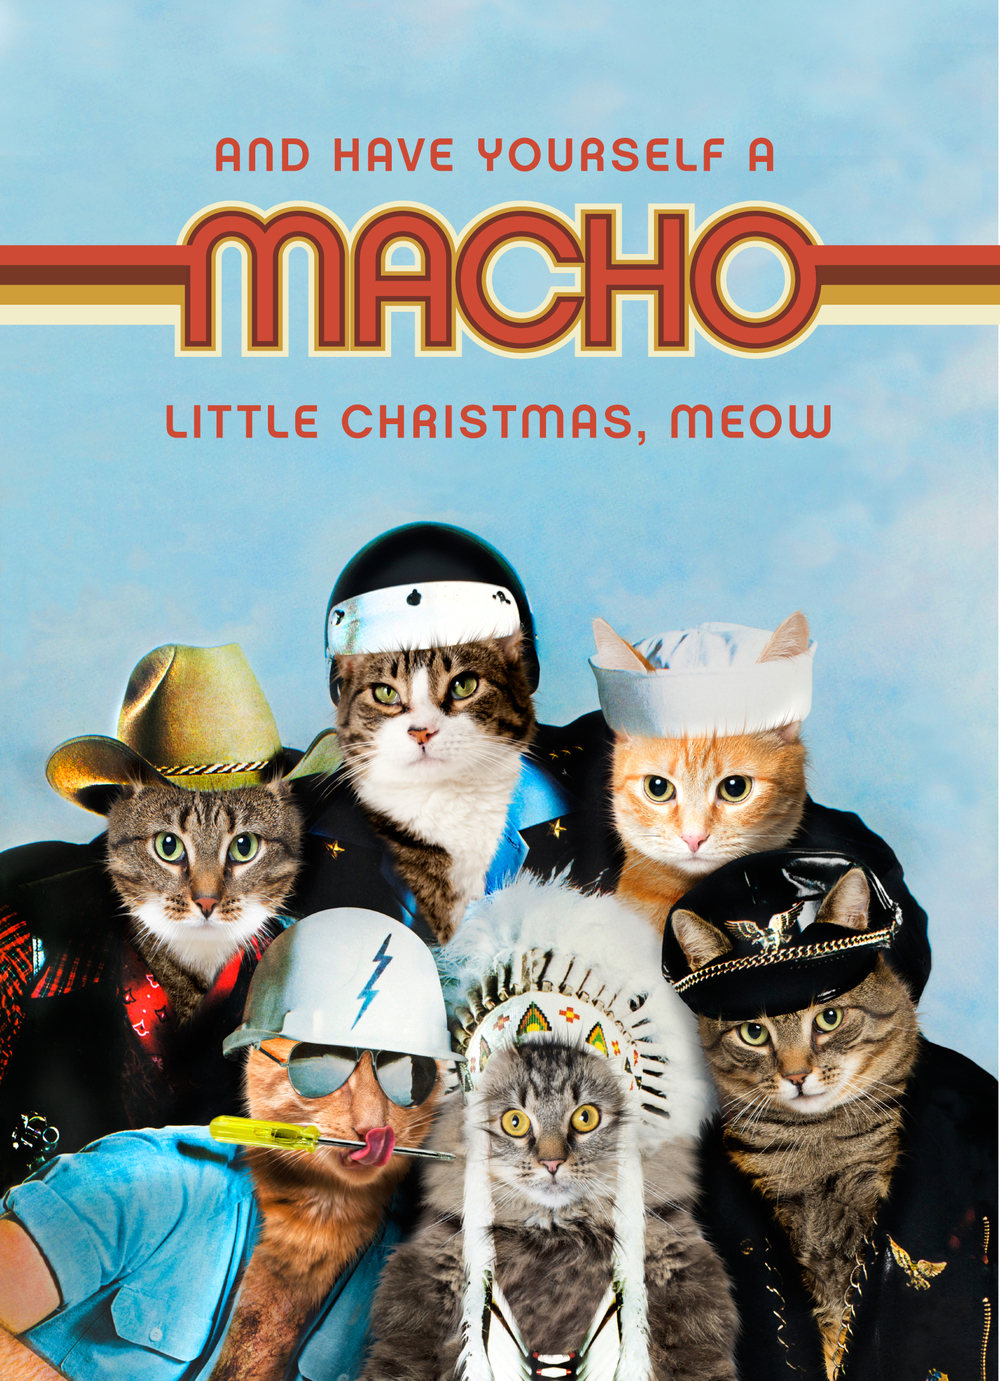 The-Artful-Union-Holiday-Cat-Village-People.jpg